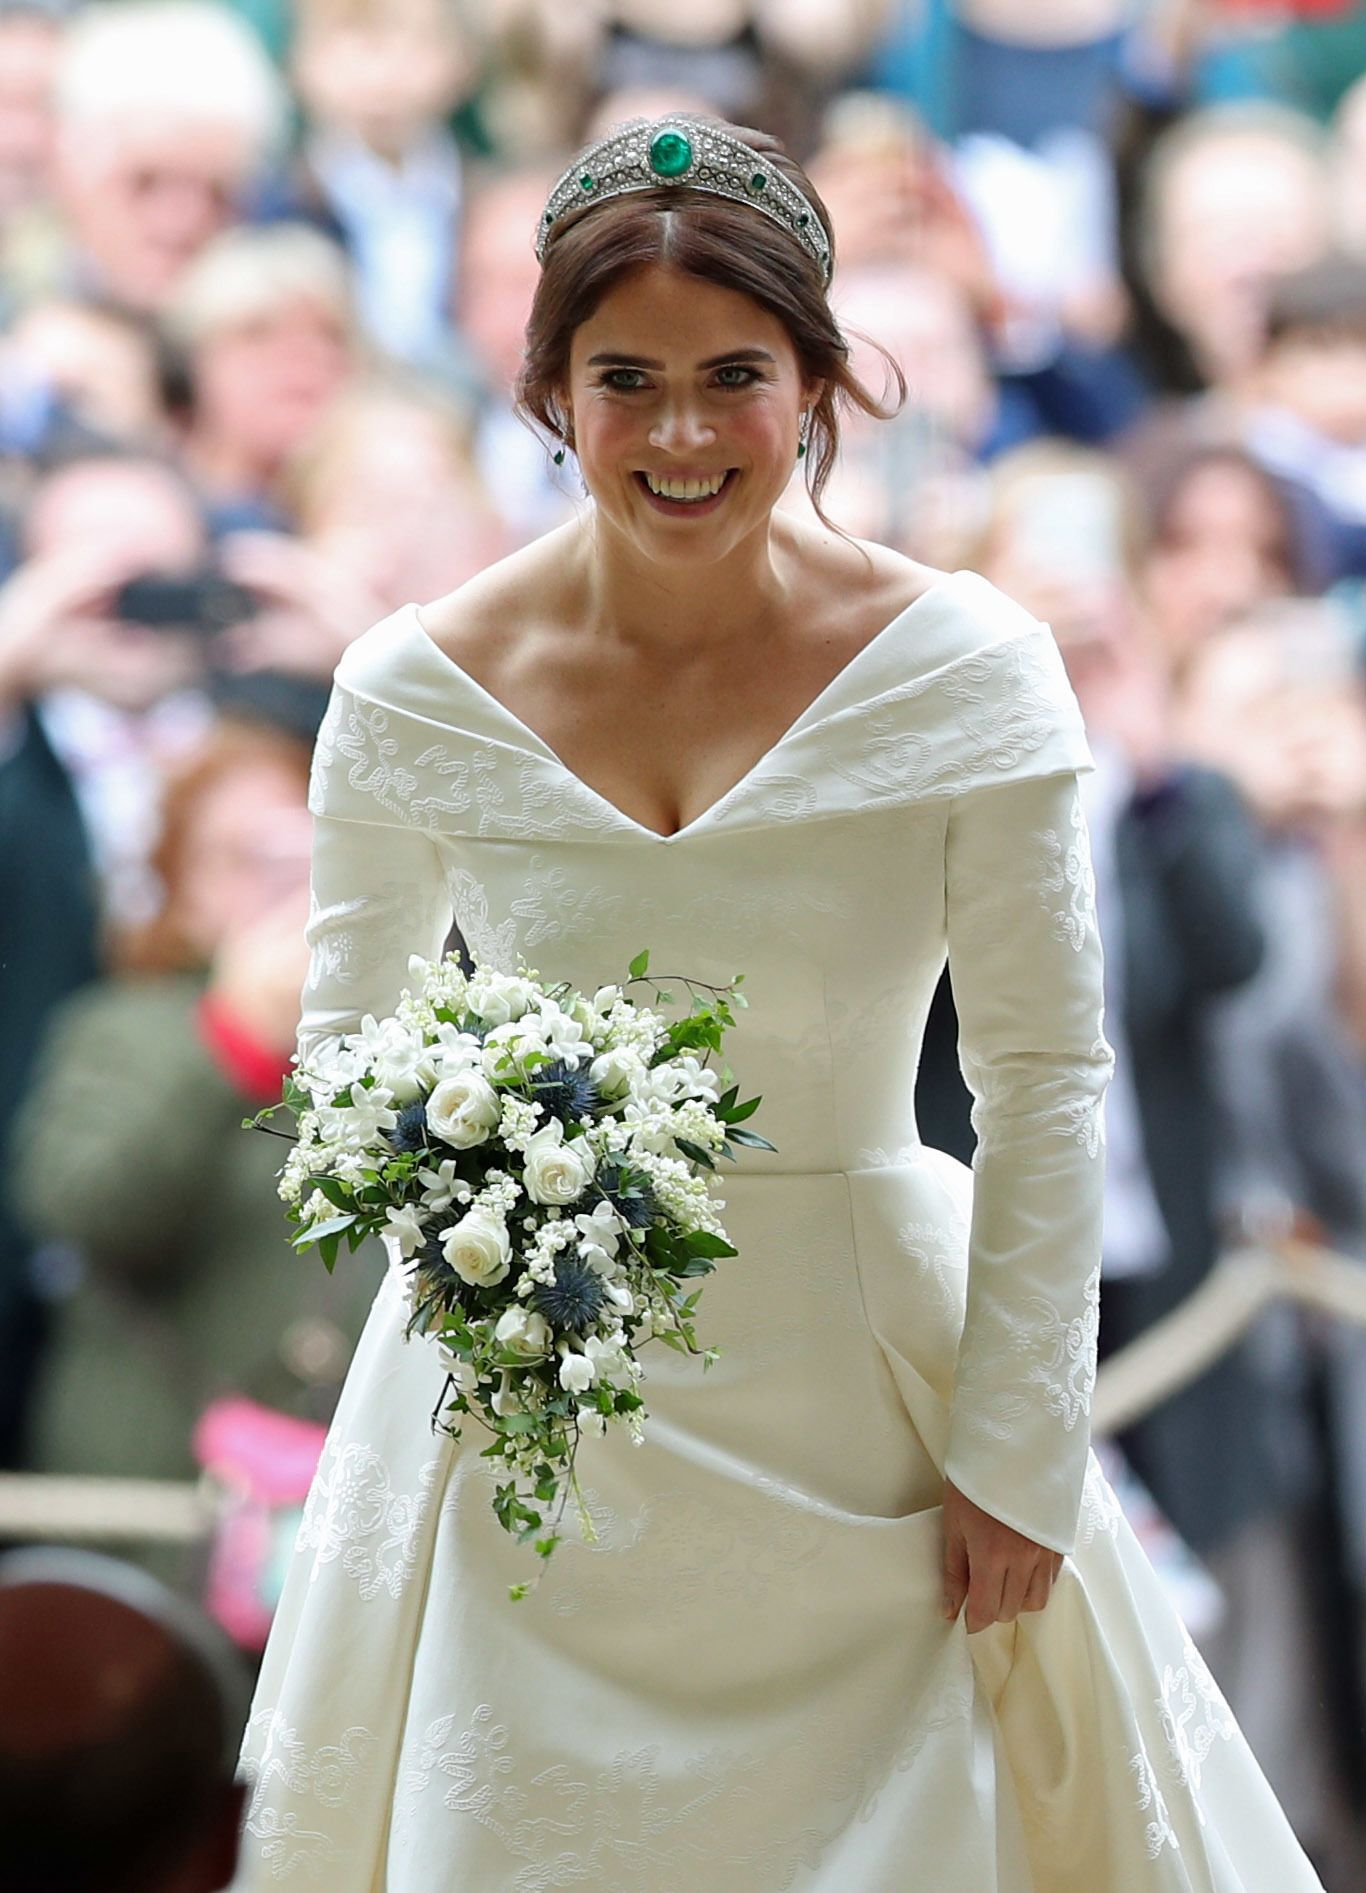 Princess Eugenie Royal Wedding Photos - Pictures of the 8nd Royal